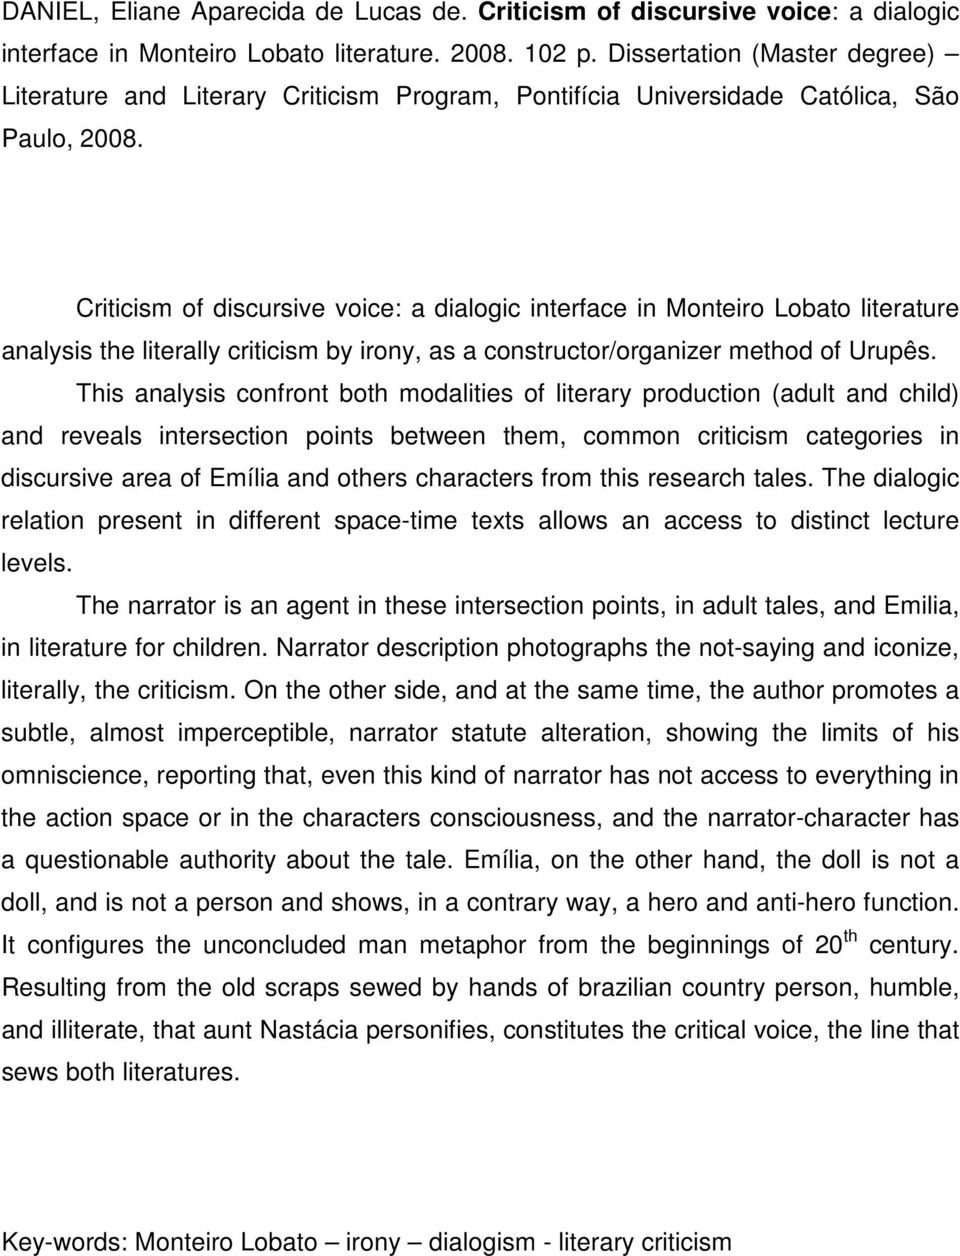 Criticism of discursive voice: a dialogic interface in Monteiro Lobato literature analysis the literally criticism by irony, as a constructor/organizer method of Urupês.